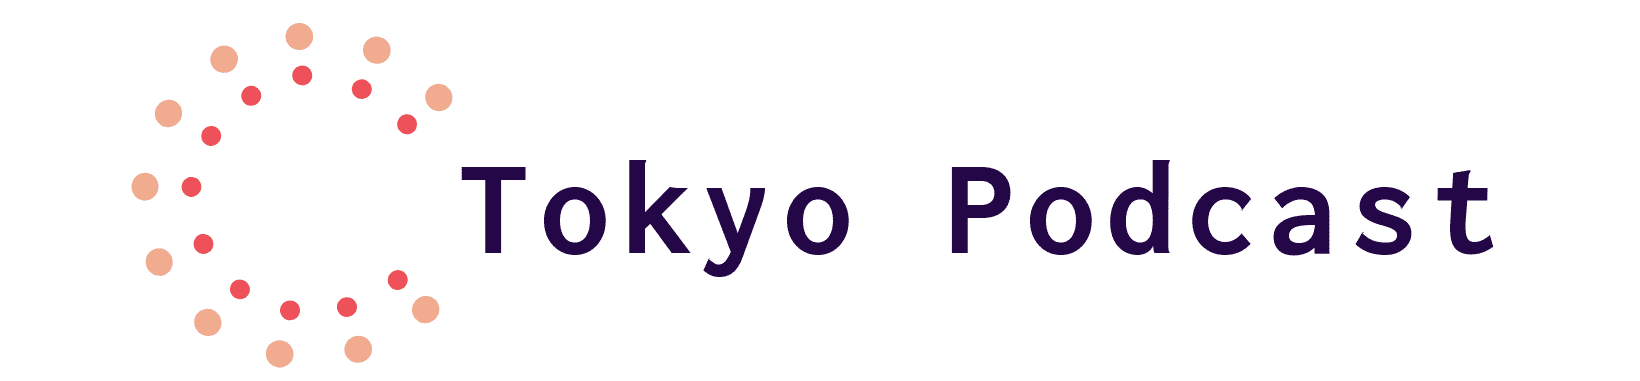 Update on Renting an Apartment In Tokyo – Tokyo Podcast